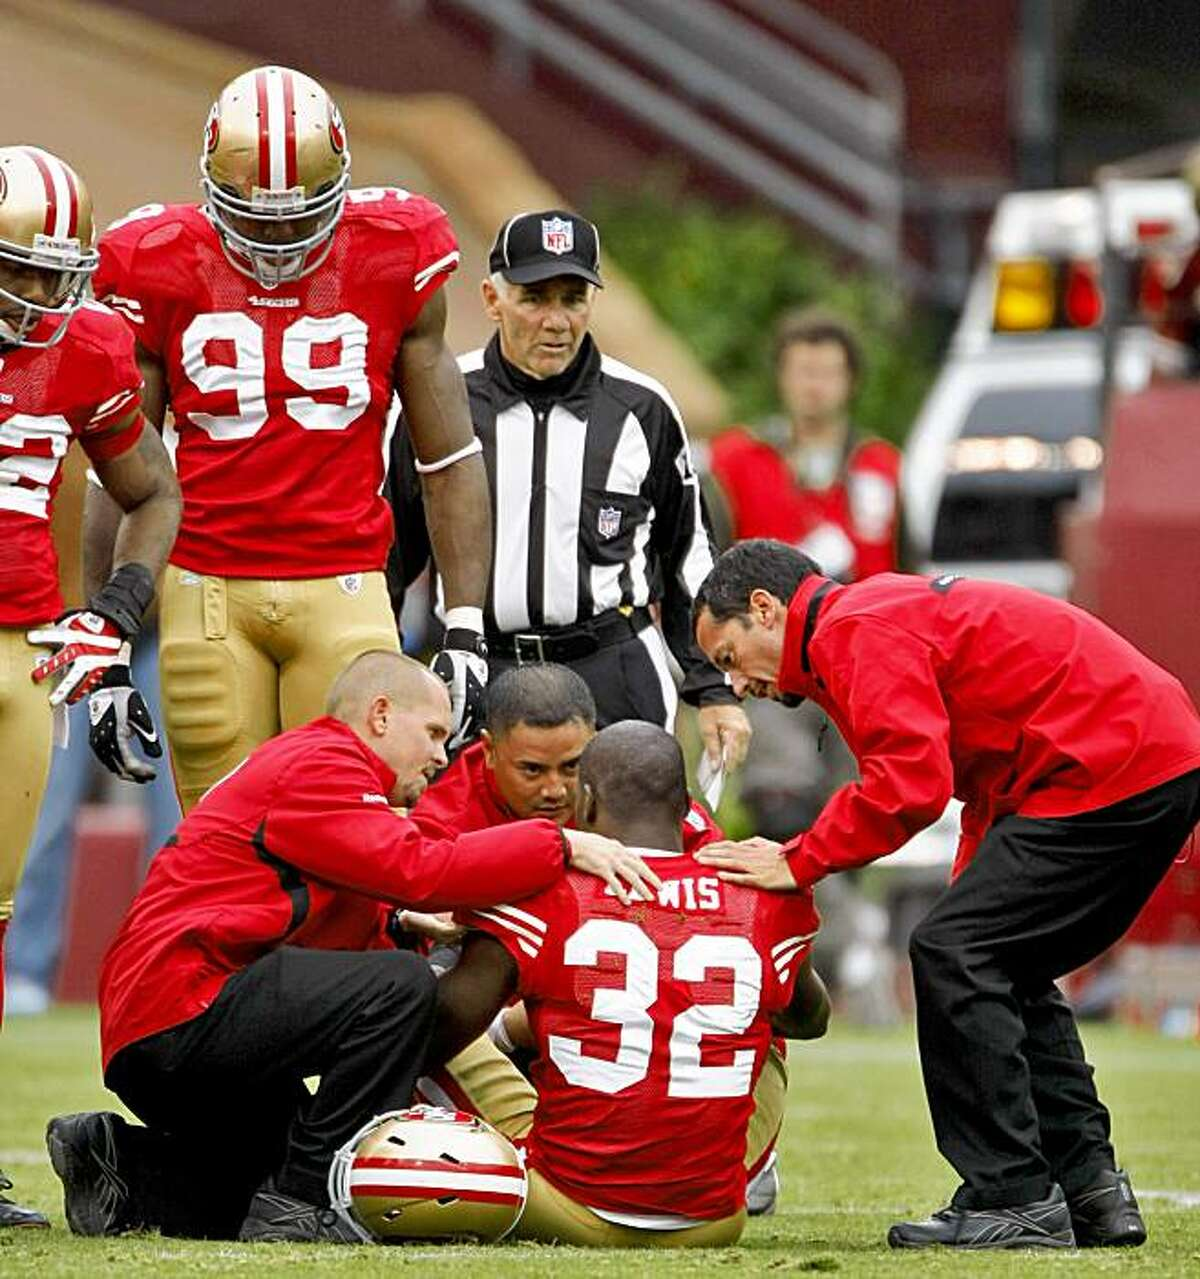 Michael Lewis is injured in the first half of the 49ers' game against the Atlanta Falcons on Sunday at Candlestick in San Francisco.